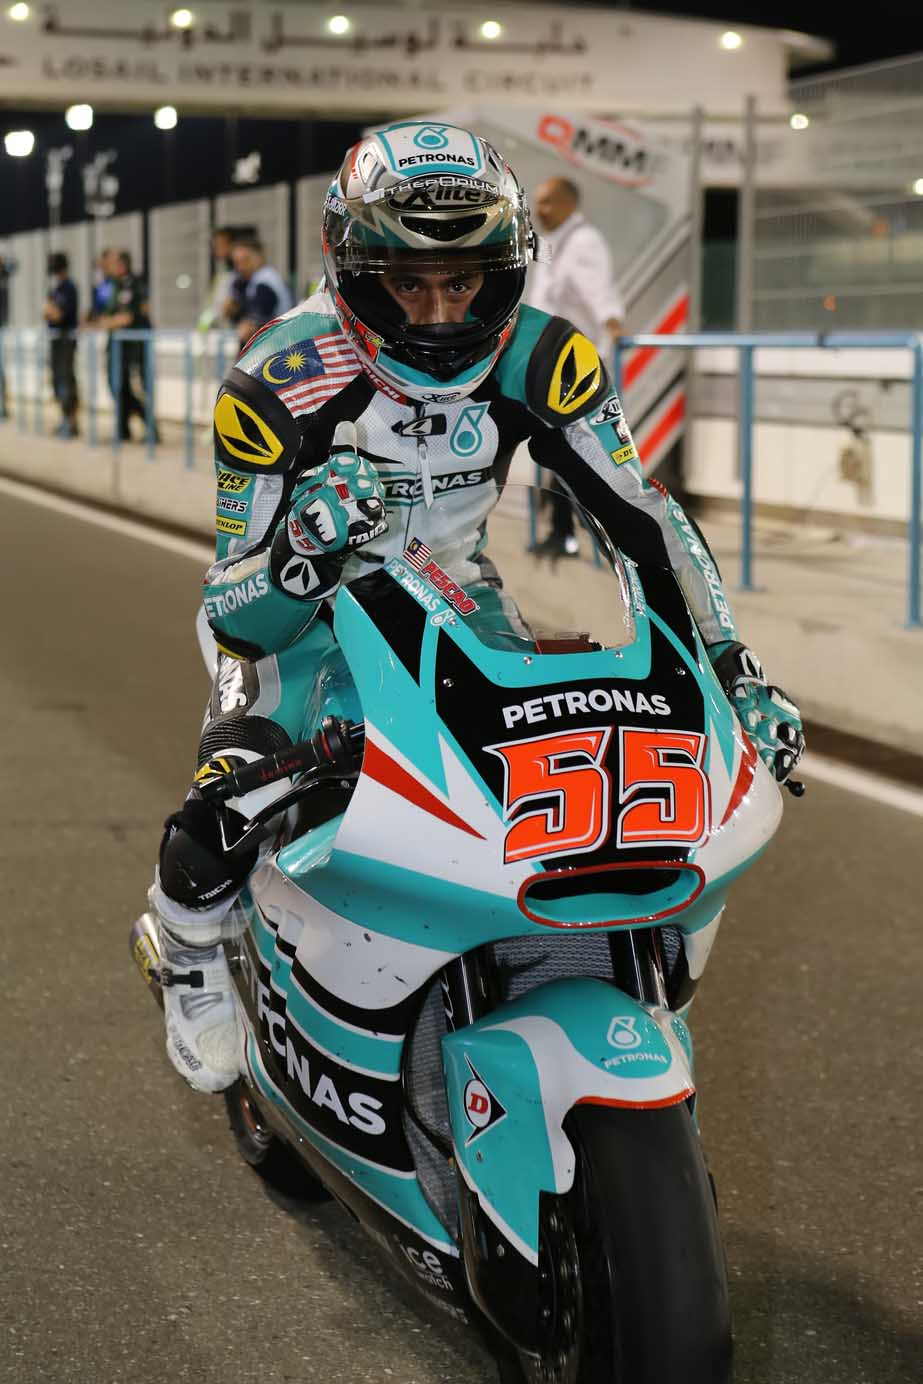 Hafizh Syahrin enjoyed a competitive start to the 2016 season onboard his Kalex as he overcame a challenging 20-lap Moto2 race and a numb hand to finish fourth, hauling 13 precious points at the Qatar Grand Prix on Sunday.